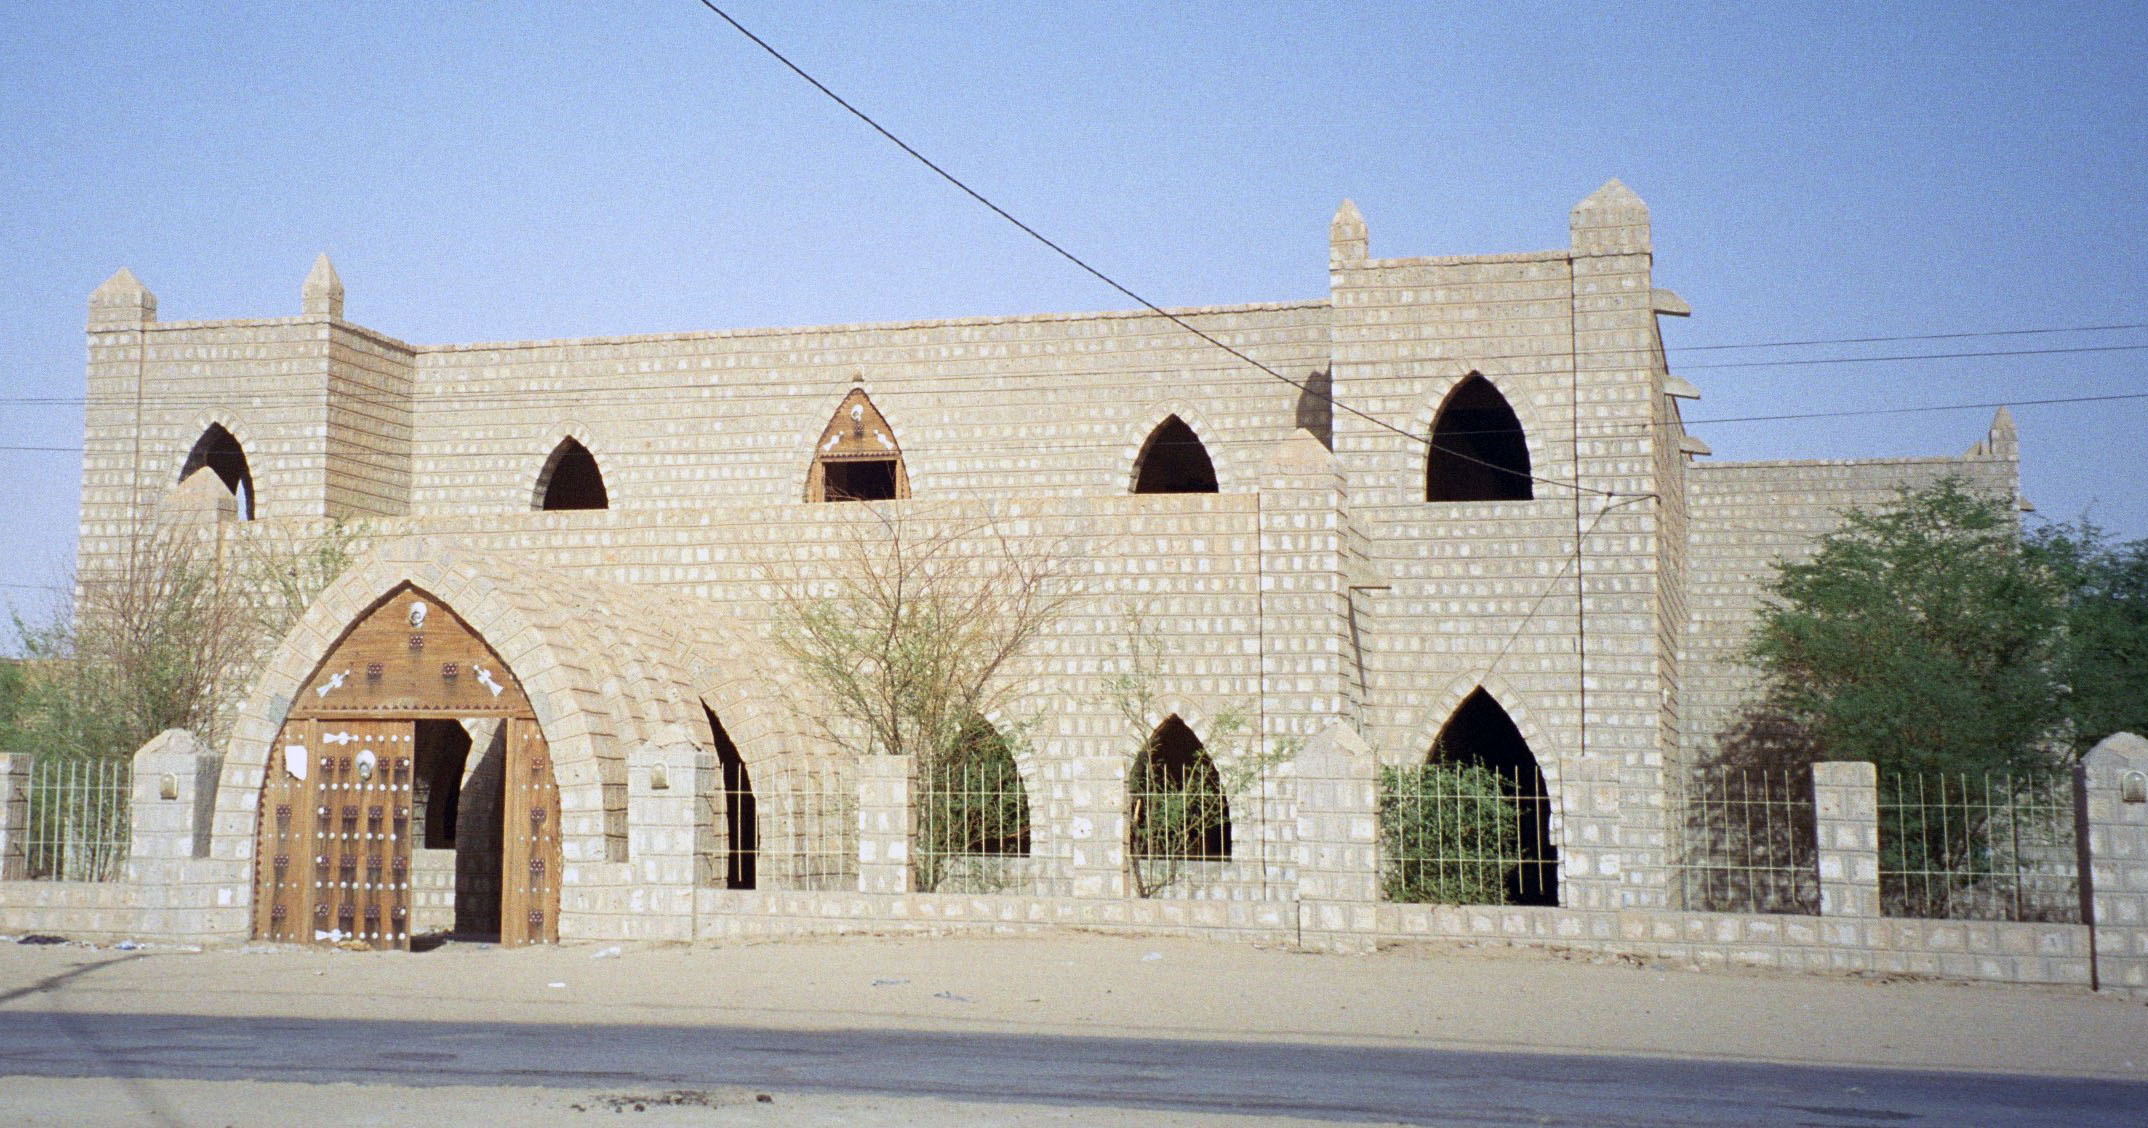 The Ahmed Baba Institute in Timbuktu